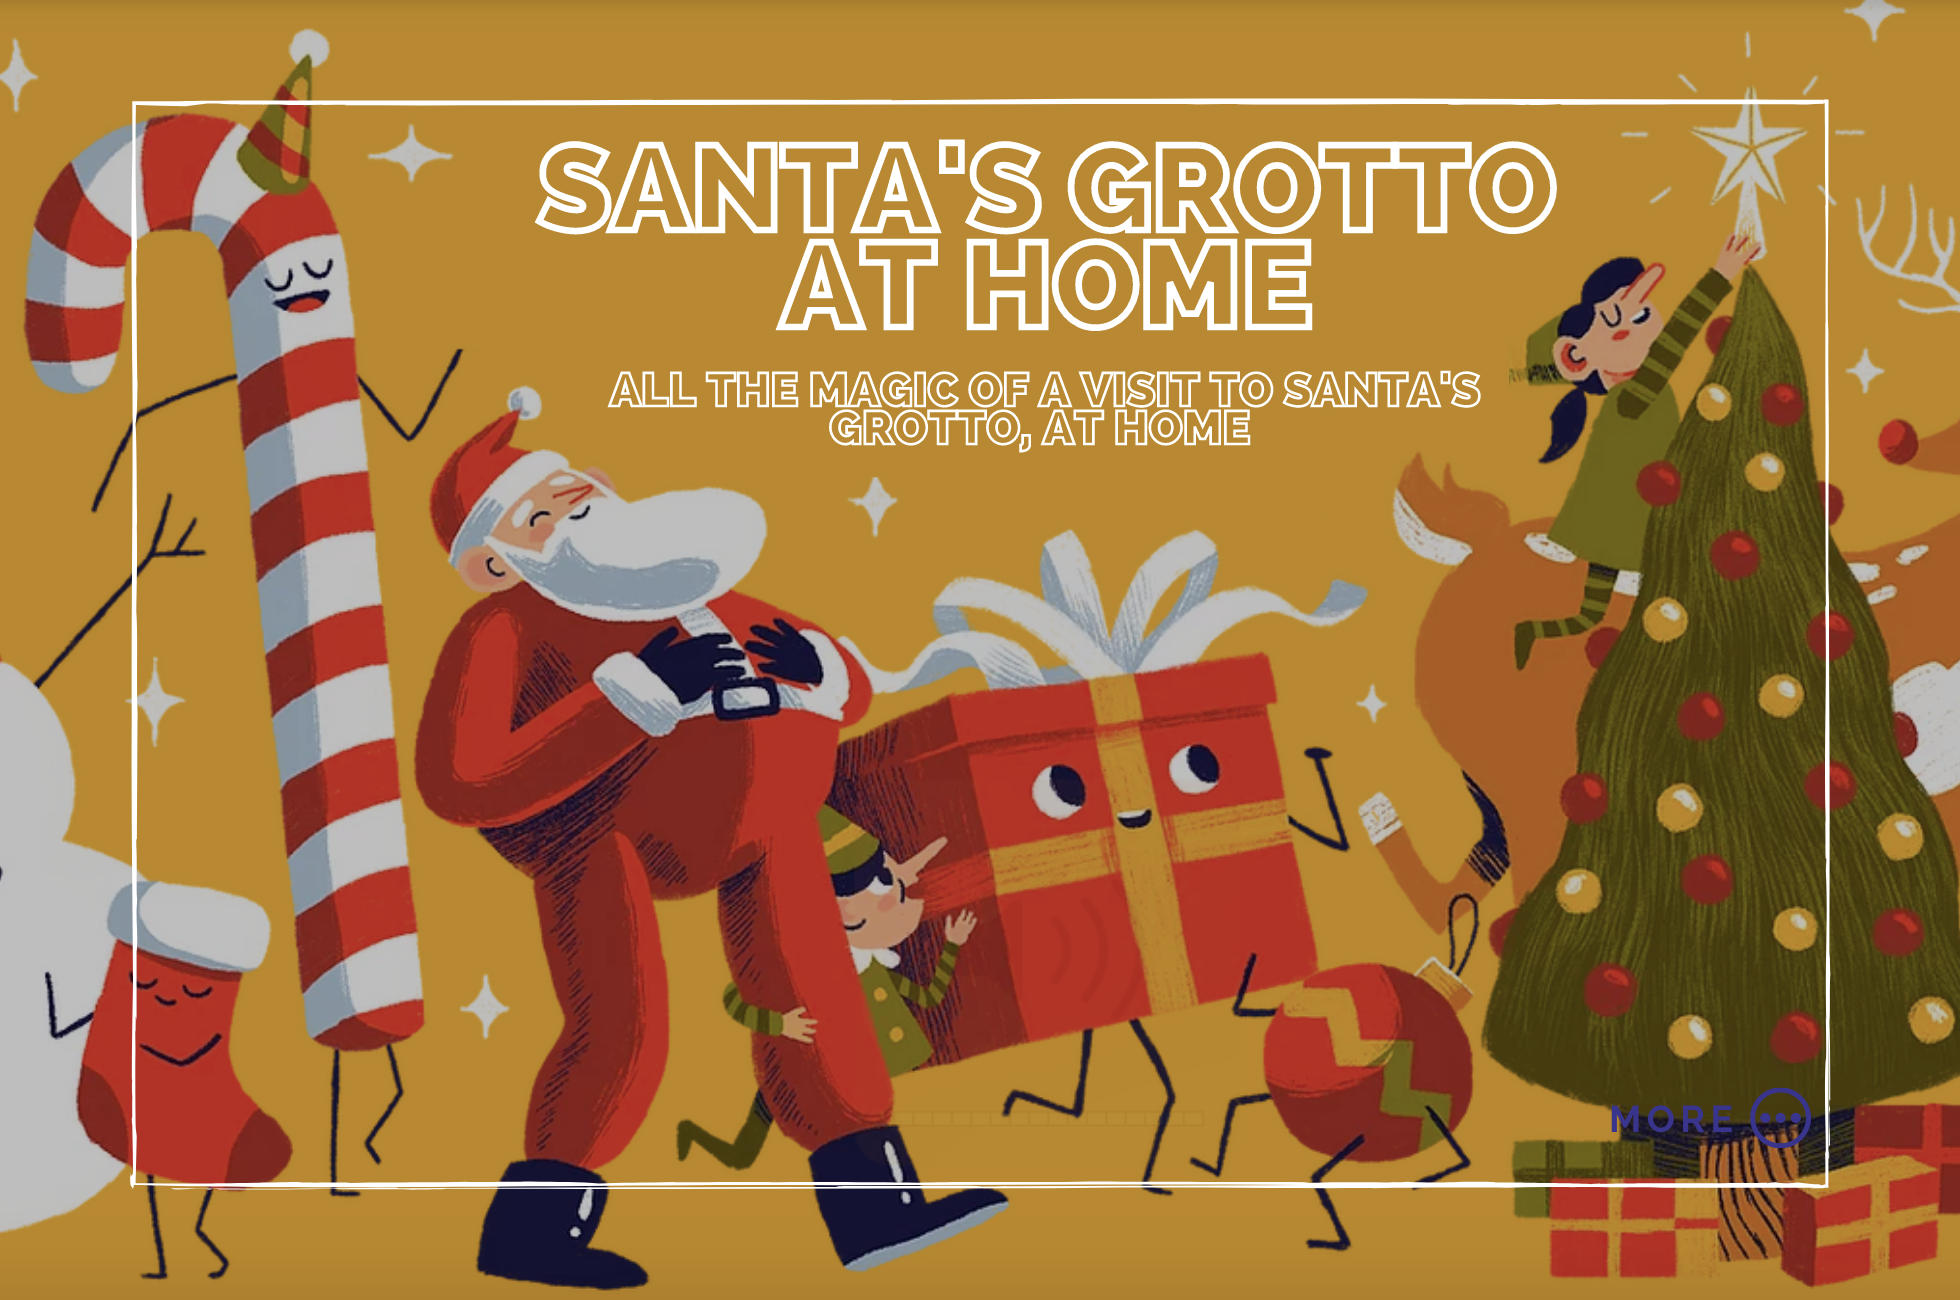 Santa's Grotto at Home